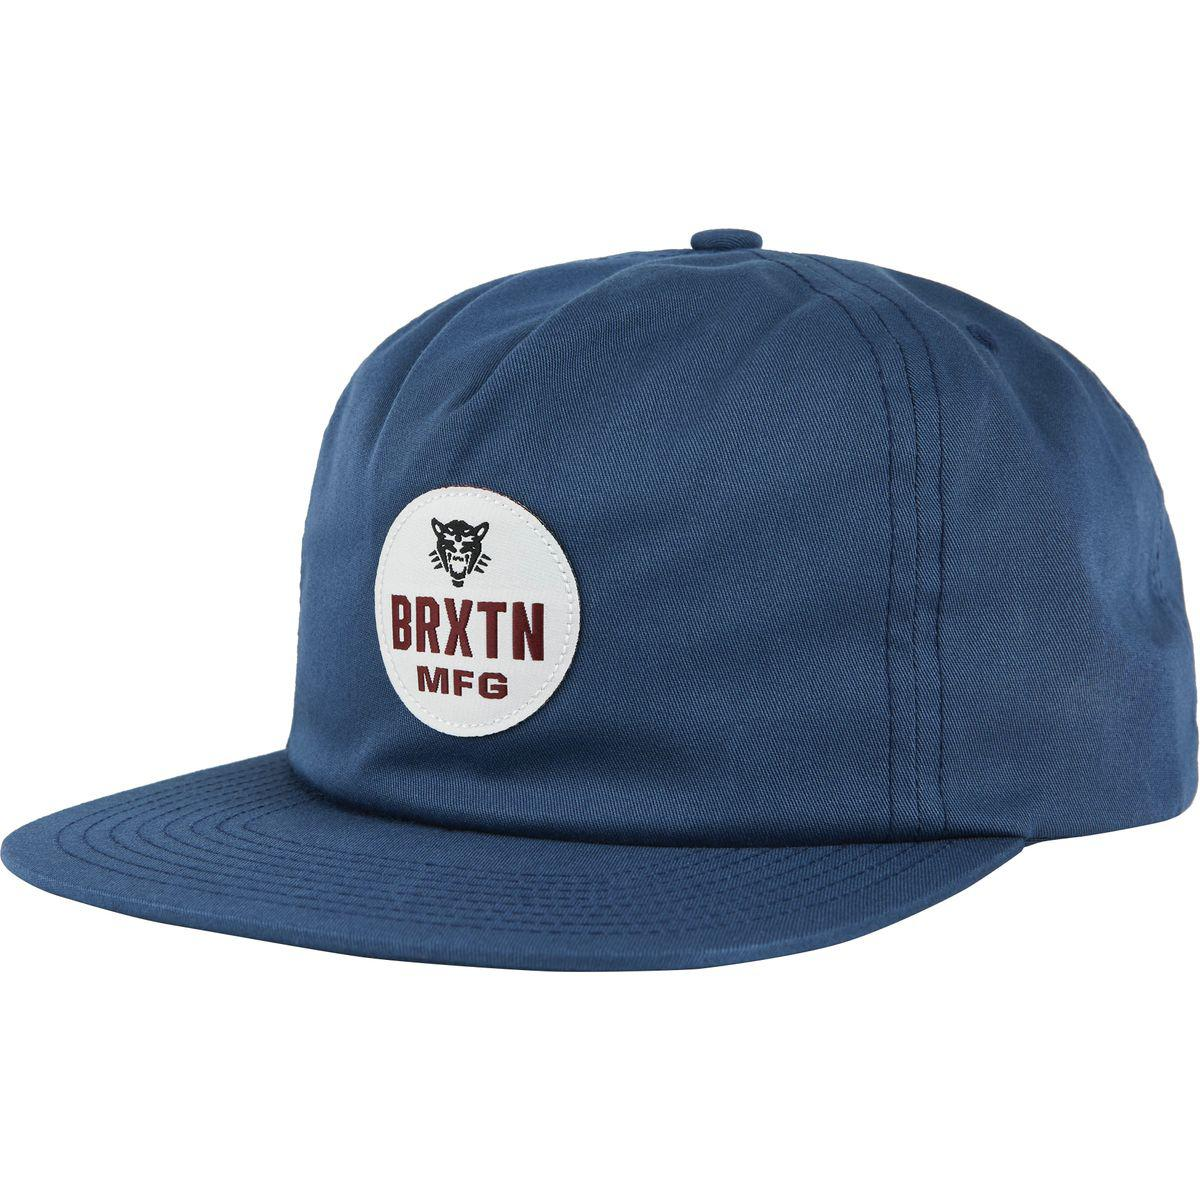 Lyst - Brixton Panther Hp Snapback Hat in Blue for Men ab9d8531605f